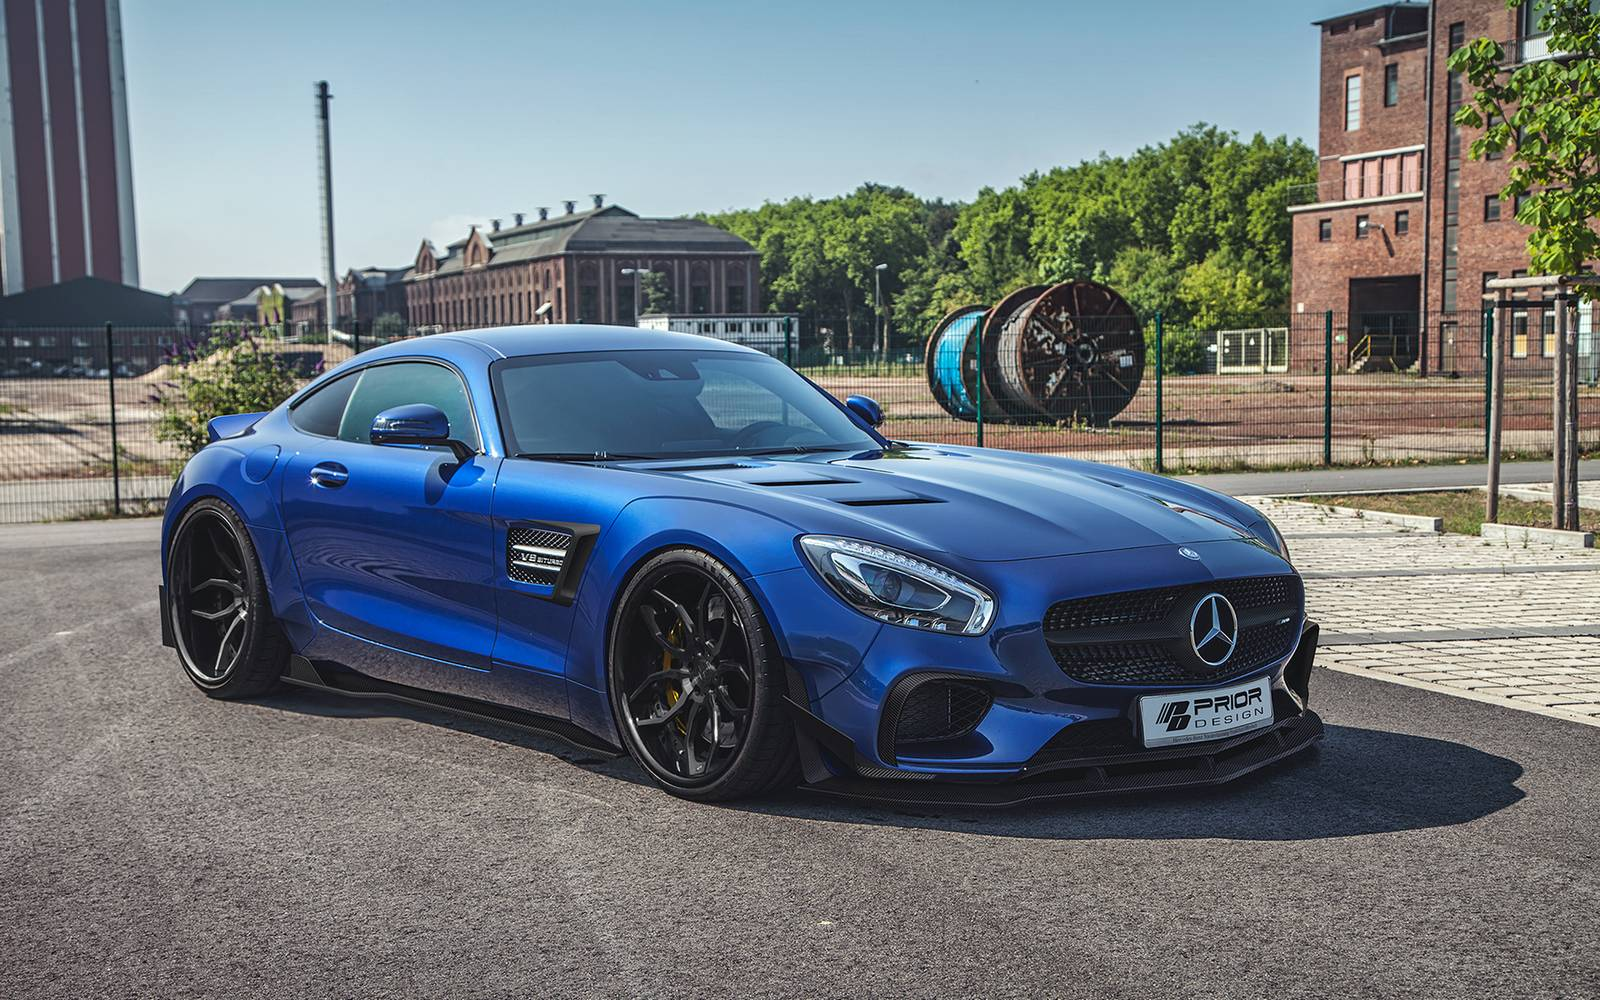 Cl Mustang >> Prior Design Reveals Mercedes-AMG GT Widebody Kit - BenzInsider.com - A Mercedes-Benz Fan Blog